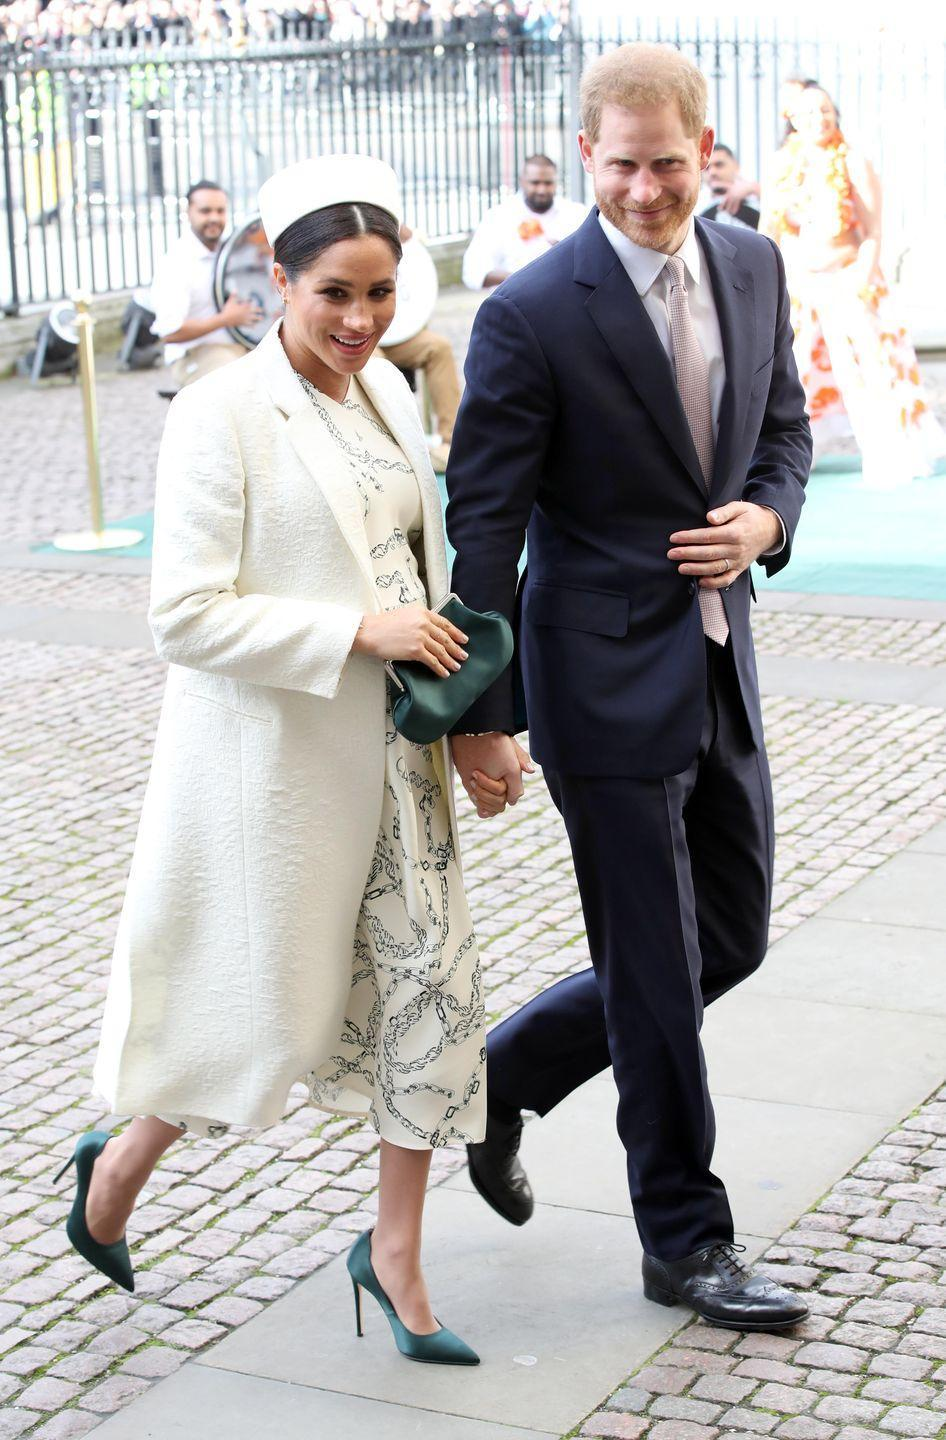 """<p>Meghan Markle arrived at the Commonwealth Day service at Westminster Abbey wearing a white coat and <a href=""""https://go.redirectingat.com?id=74968X1596630&url=https%3A%2F%2Fwww.modaoperandi.com%2Fvictoria-beckham-fw19%2Fchain-link-print-cady-dress&sref=https%3A%2F%2Fwww.townandcountrymag.com%2Fstyle%2Ffashion-trends%2Fg3272%2Fmeghan-markle-preppy-style%2F"""" rel=""""nofollow noopener"""" target=""""_blank"""" data-ylk=""""slk:printed dress by Victoria Beckham"""" class=""""link rapid-noclick-resp"""">printed dress by Victoria Beckham</a>. The Duchess topped off her look with a white pill-box hat, a dark green satin clutch and pumps. </p><p><a class=""""link rapid-noclick-resp"""" href=""""https://go.redirectingat.com?id=74968X1596630&url=https%3A%2F%2Fwww.modaoperandi.com%2Fvictoria-beckham-fw19%2Fchain-link-print-cady-dress&sref=https%3A%2F%2Fwww.townandcountrymag.com%2Fstyle%2Ffashion-trends%2Fg3272%2Fmeghan-markle-preppy-style%2F"""" rel=""""nofollow noopener"""" target=""""_blank"""" data-ylk=""""slk:Shop Now"""">Shop Now</a> <em>Chain-Link Print Cady Dress, Victoria Beckham, $1,590</em></p>"""